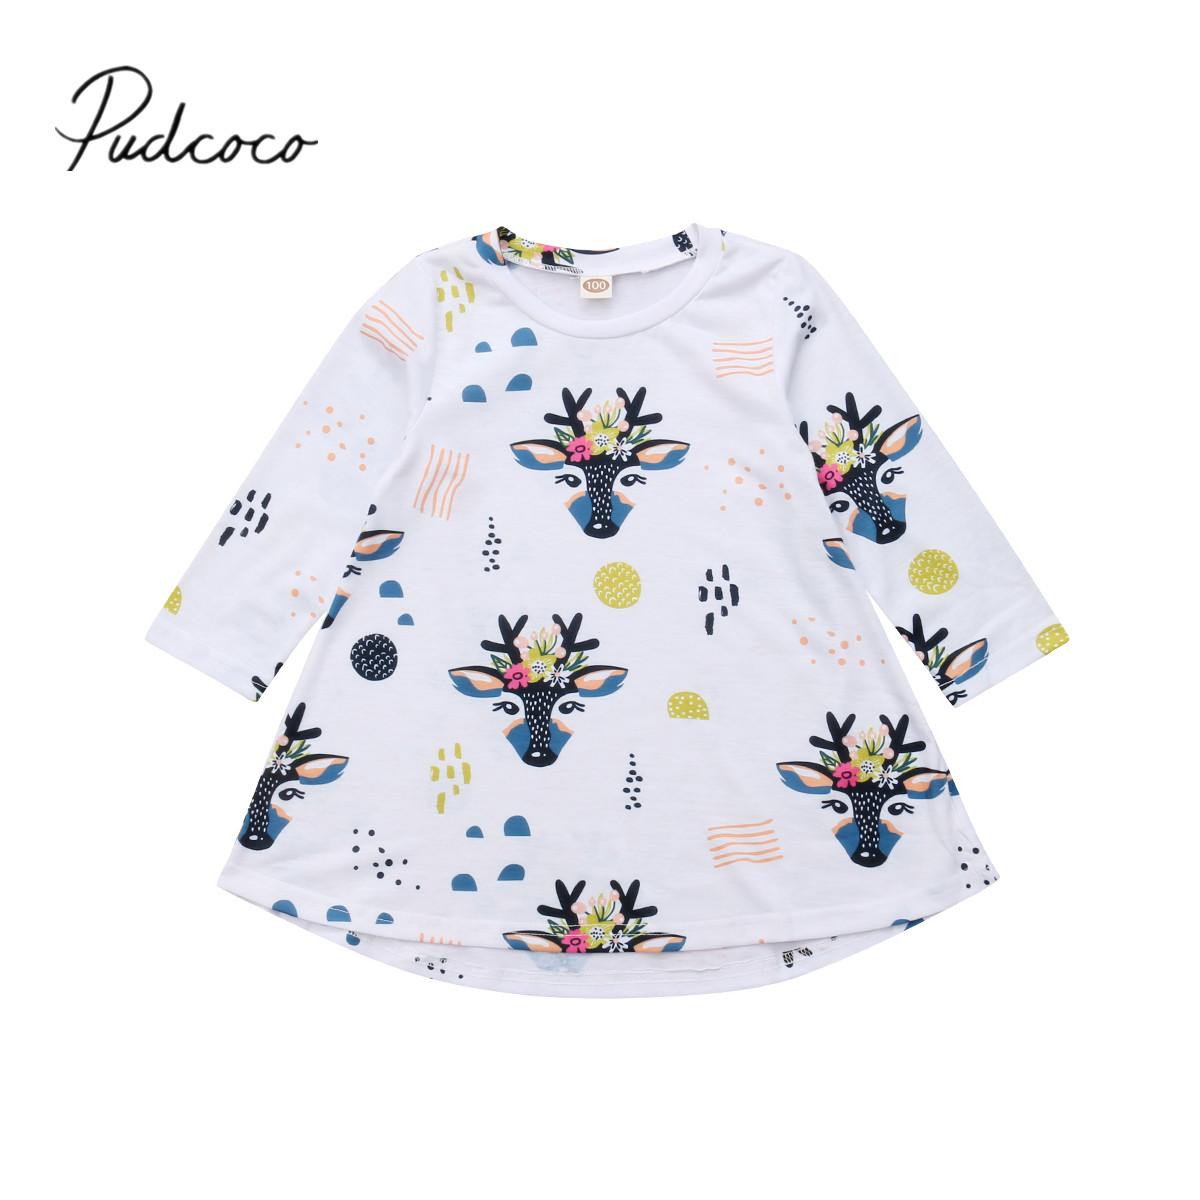 2018 Brand New 1-5Y Toddler Baby Girls Princess Autumn Dress Long Sleeve Cartoon Deer Floral Knee-Length A-Line Cotton Dress